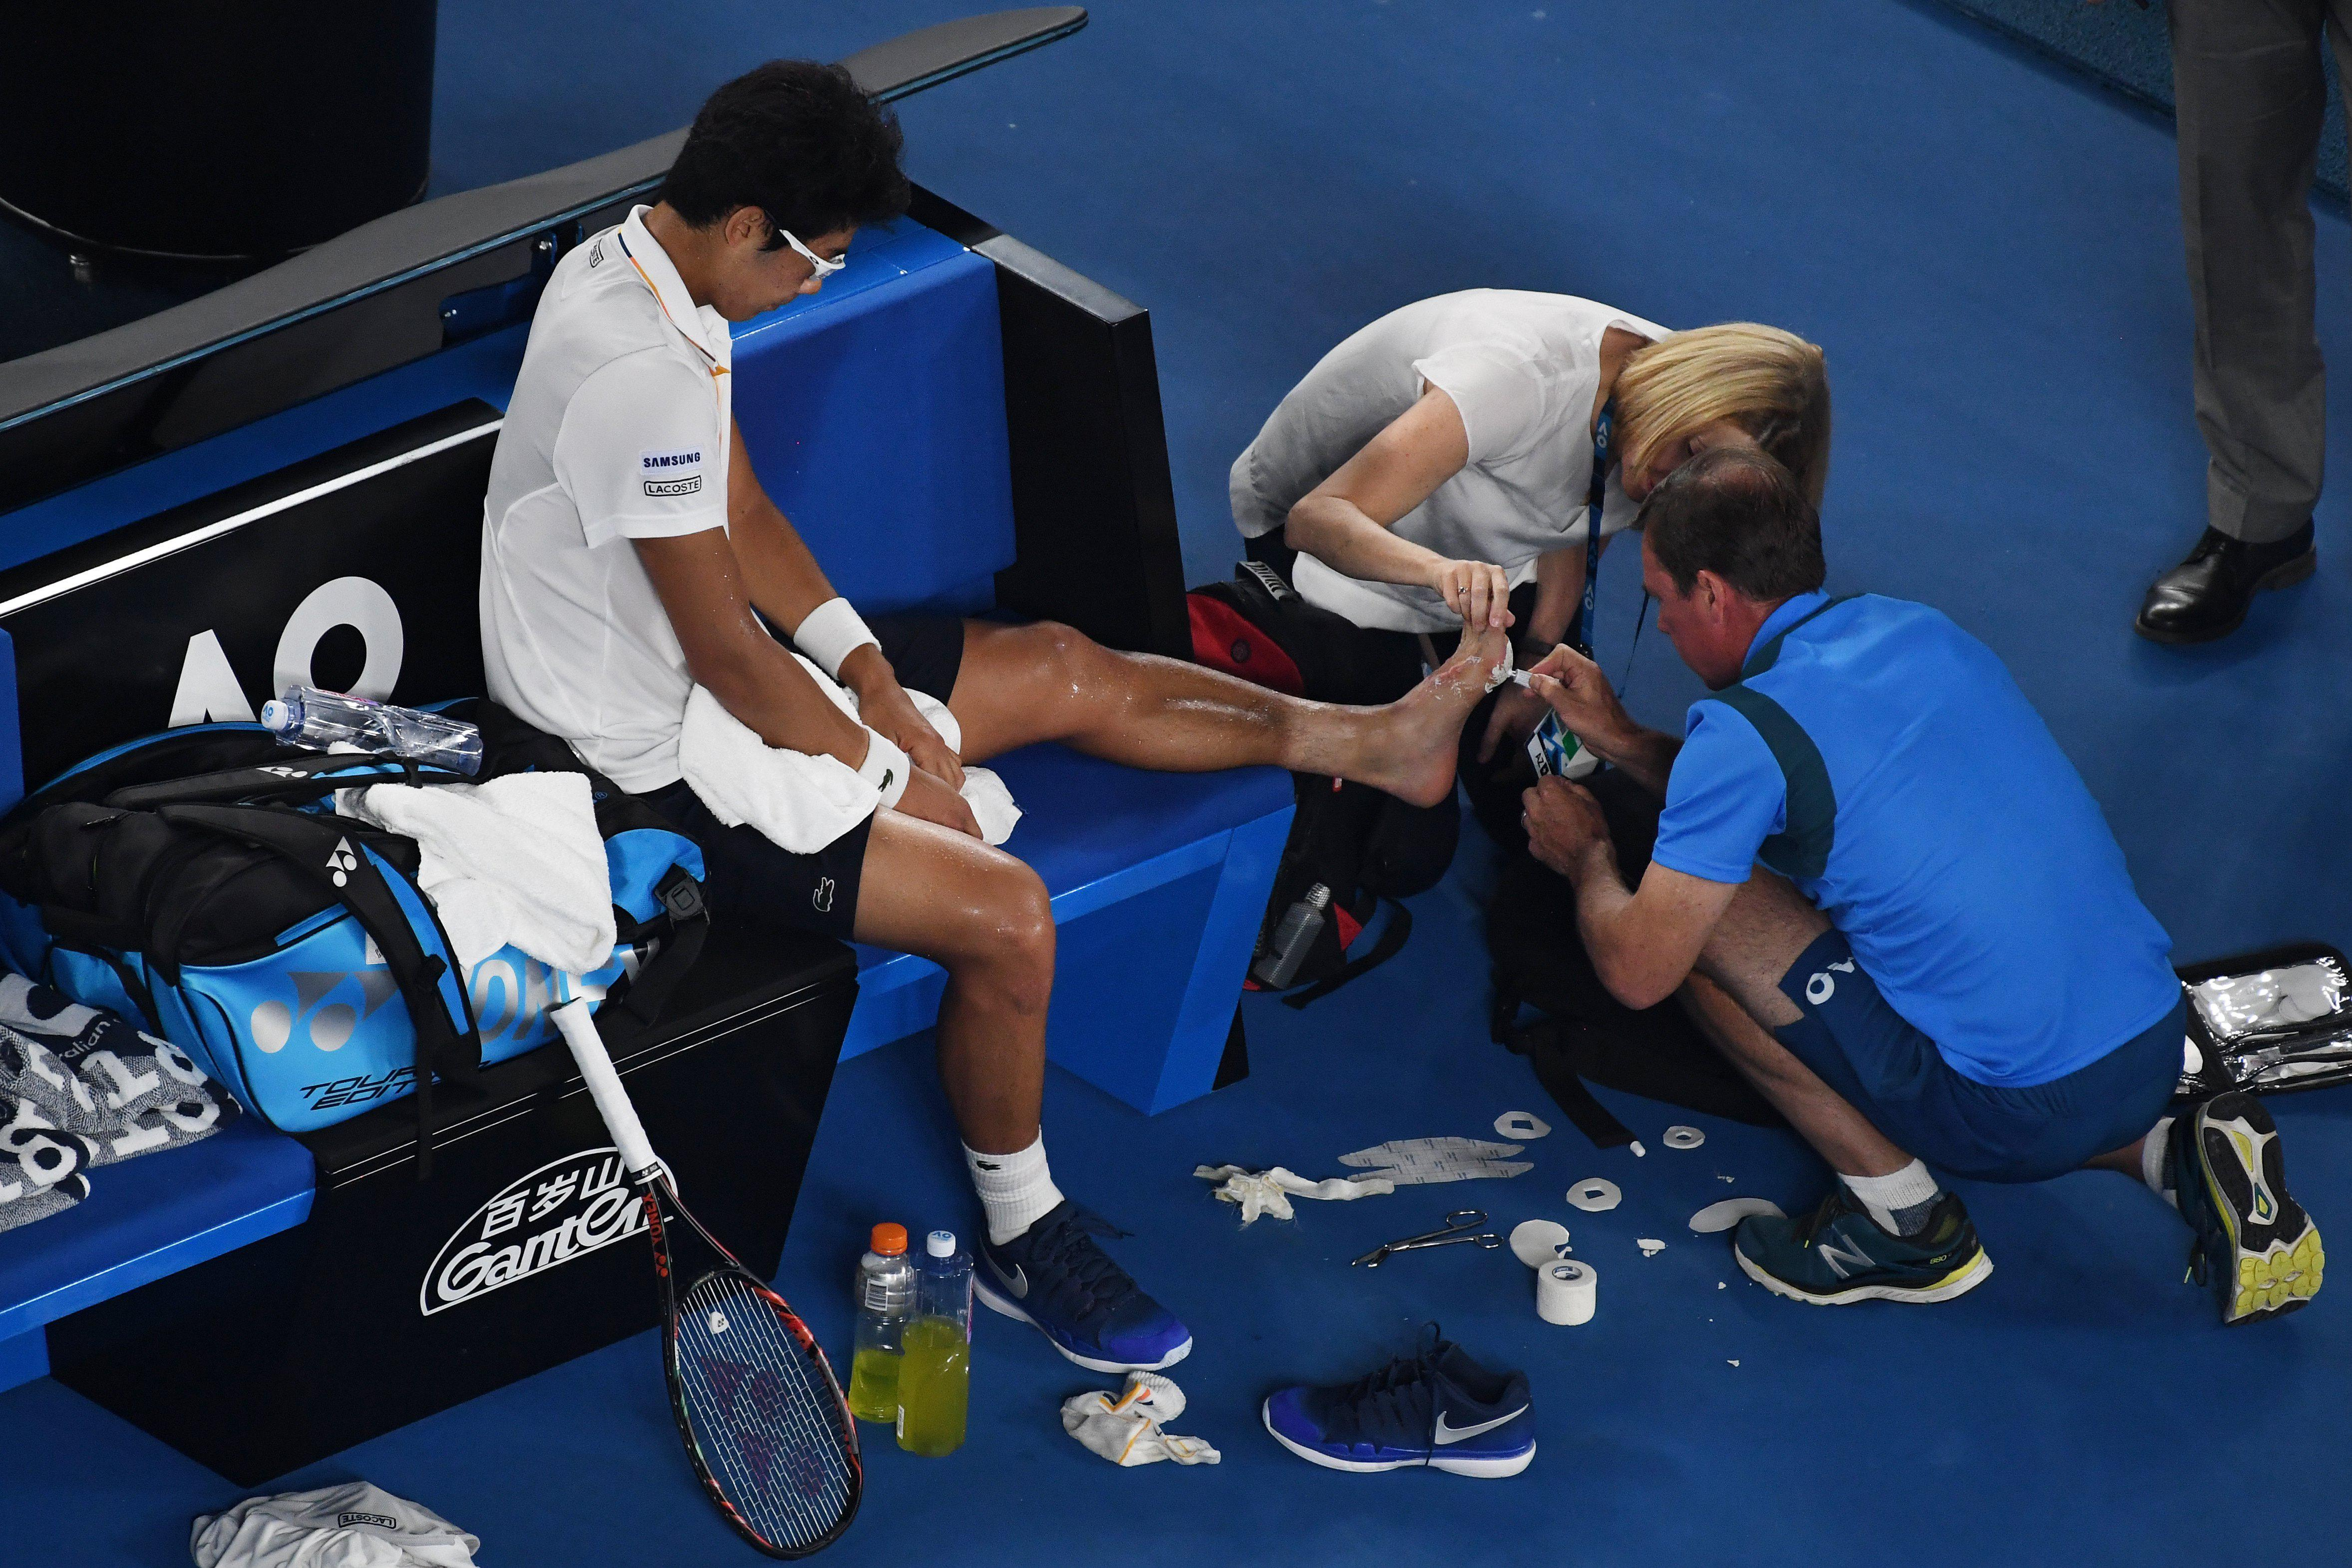 Chung Hyeon was struggling with blisters during showdown with Roger Federer